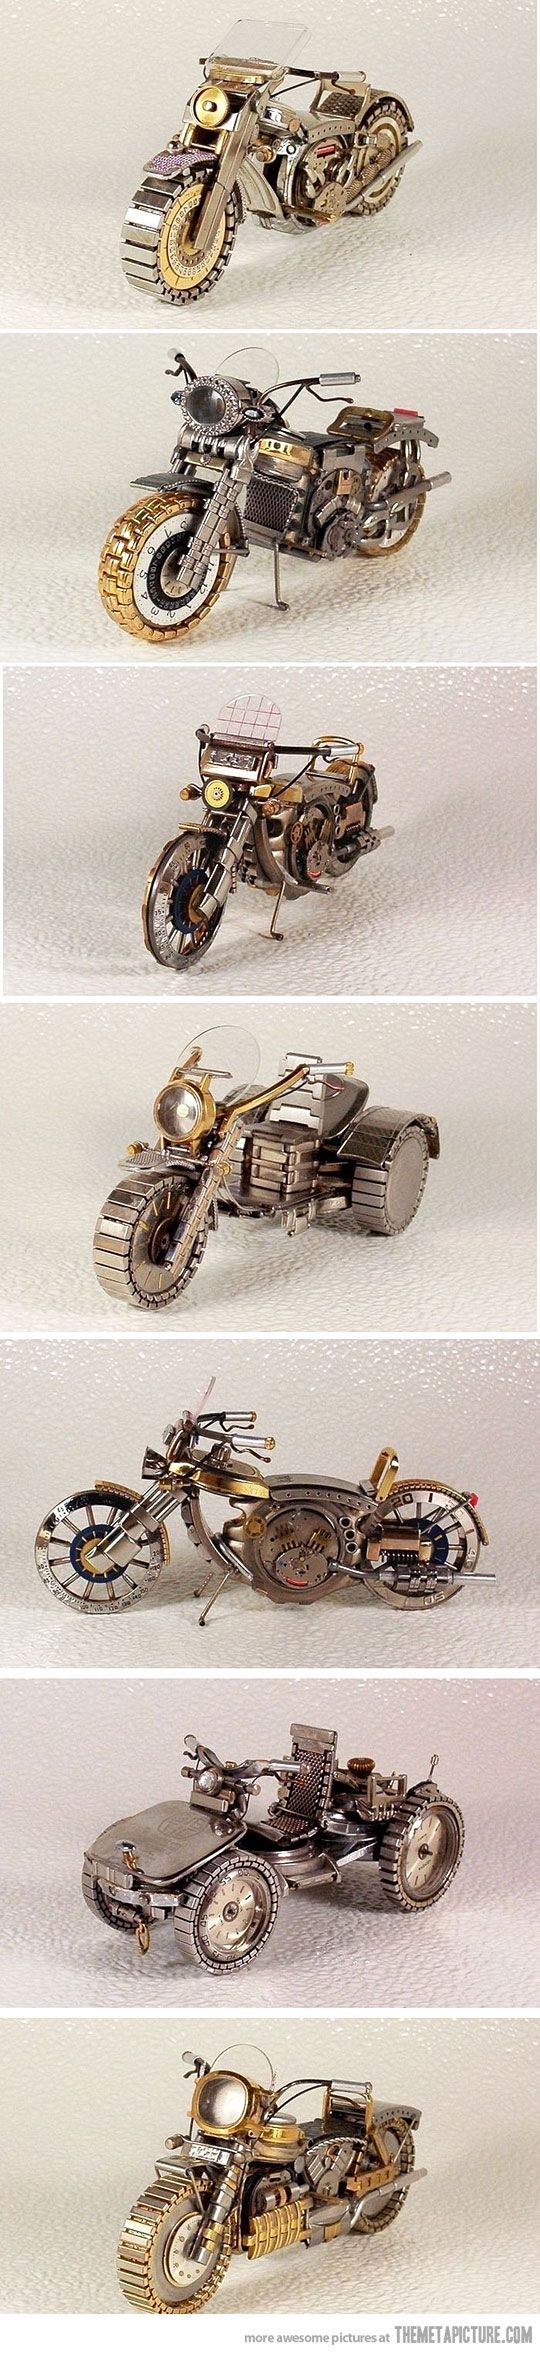 awesome bikes madet of old watches